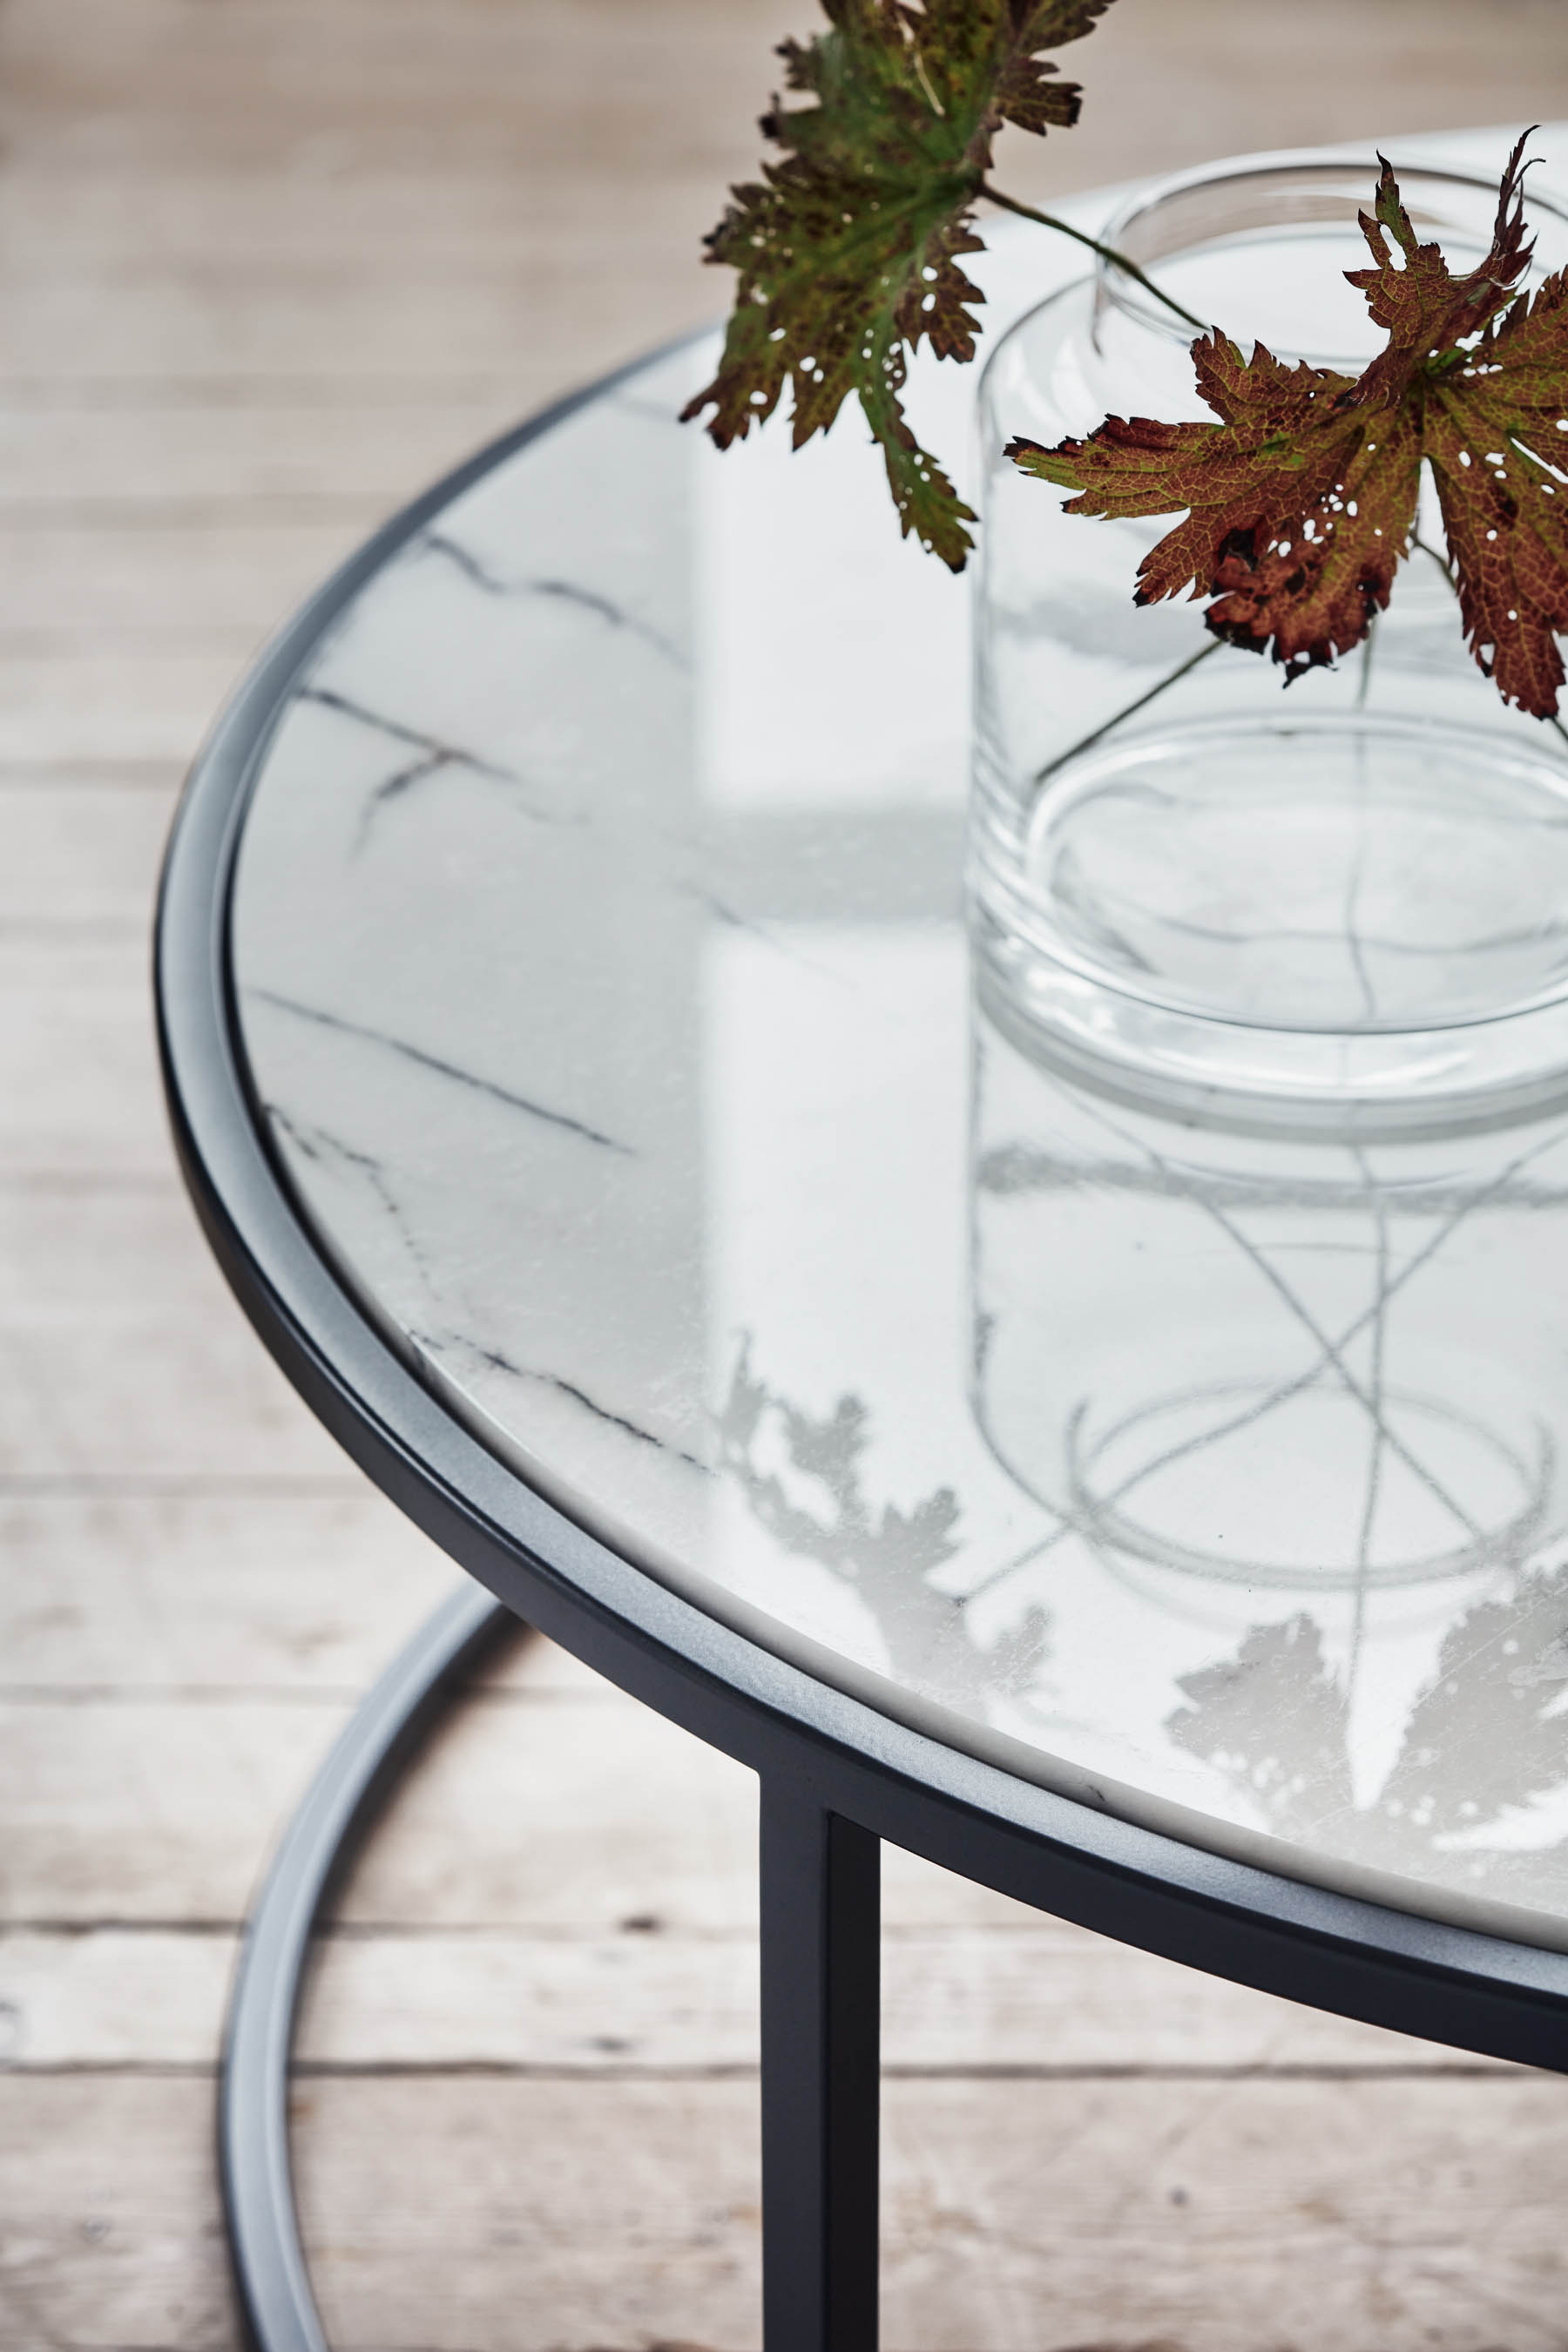 Siena Rnd Coffee Table Detial 01